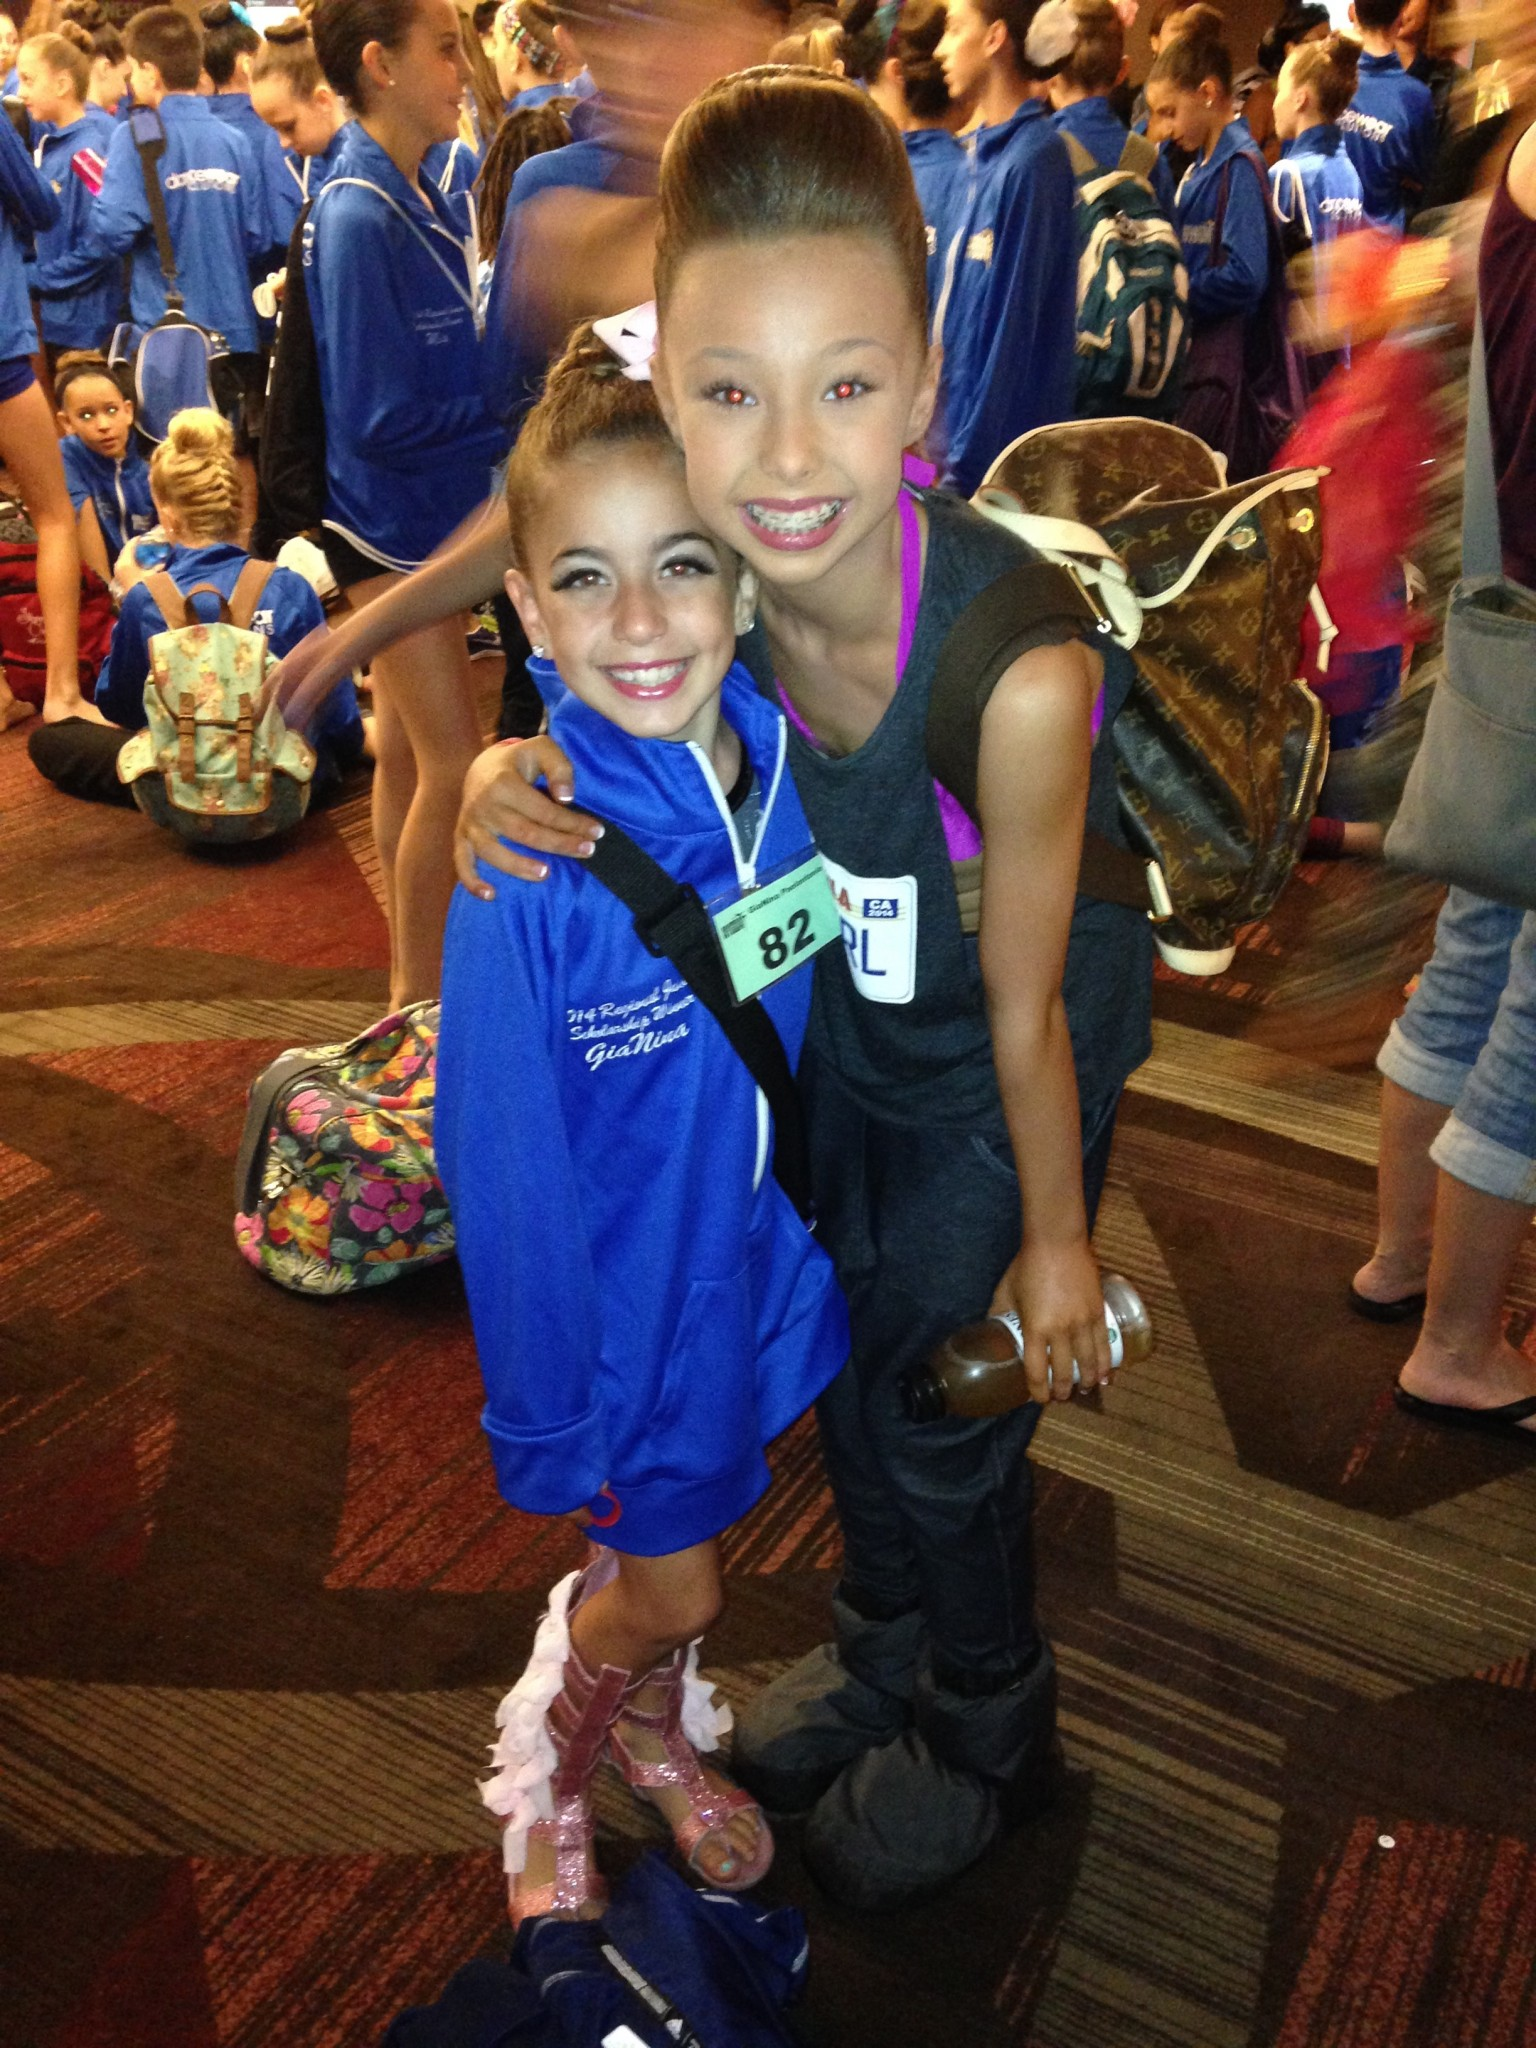 GiaNina-and-Sophia-Lucia-at-NYCDA-Nationals-2014-1536x2048.jpg